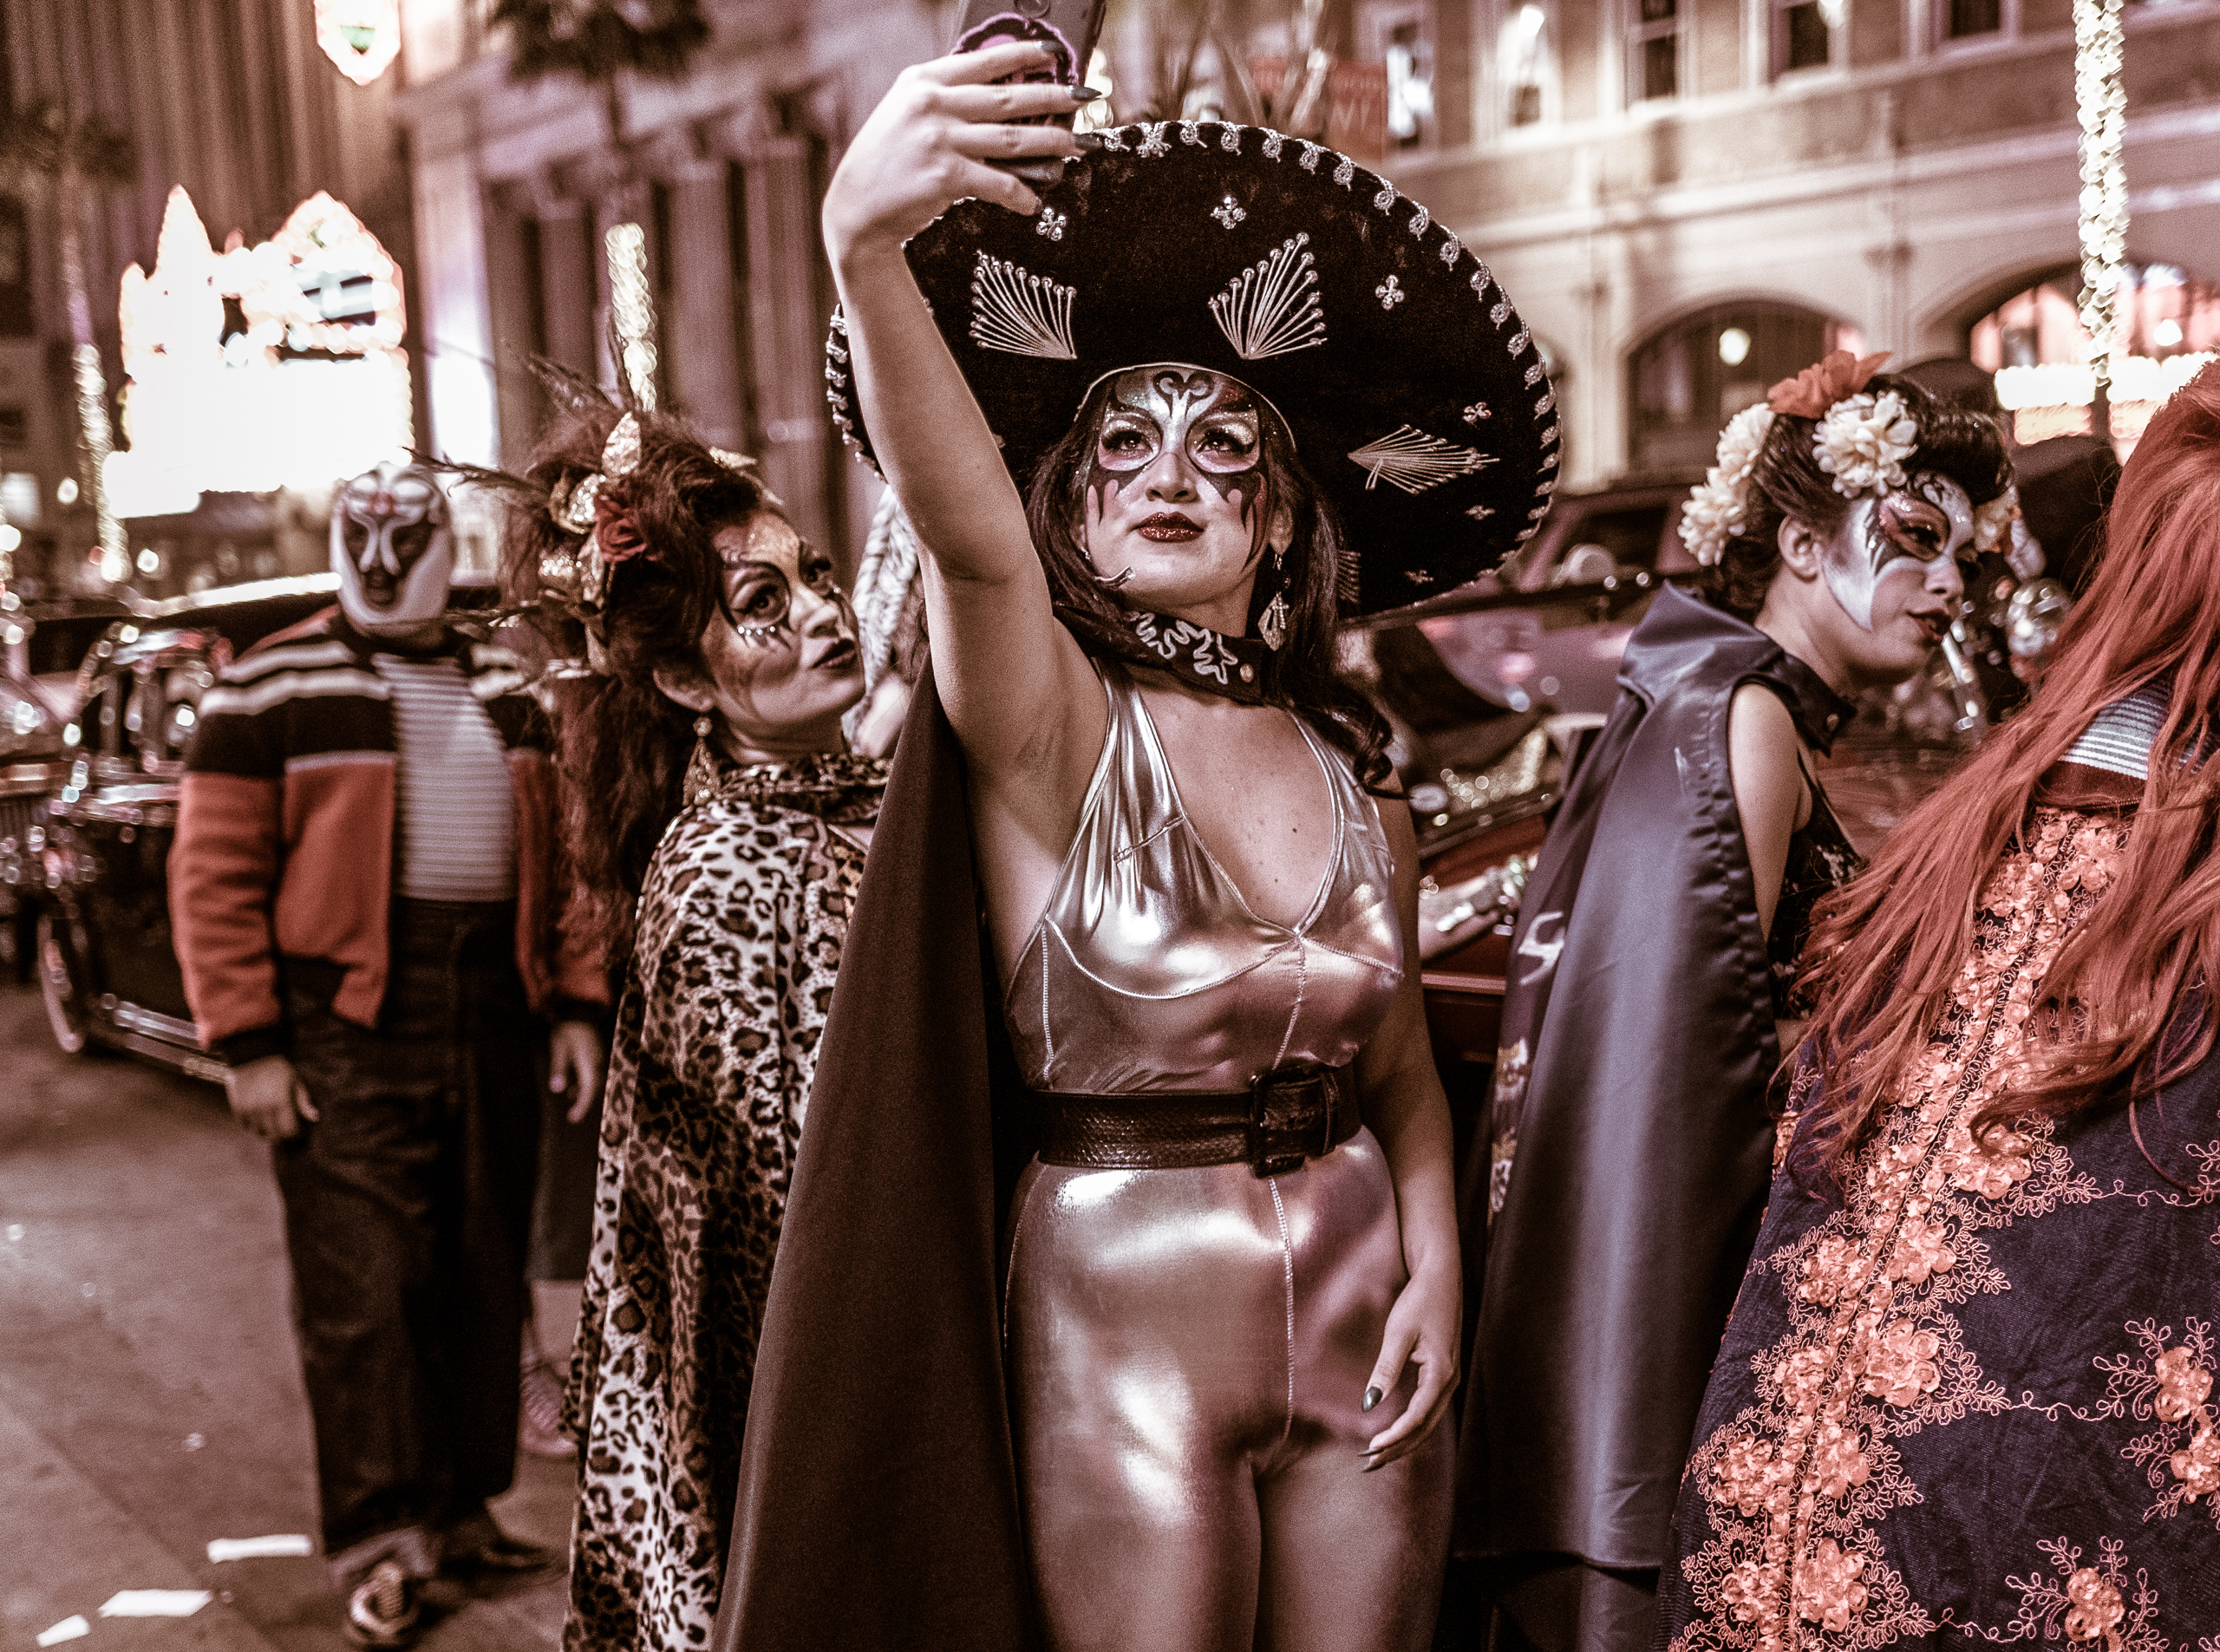 a woman in Lucha Libre facepaint, a large sombrero, a shiny silver catsuit, and a black cape, holds a cell phone triumphantly up to the heavens and points it back at herself standing on Hollywood Blvd to take a selfie